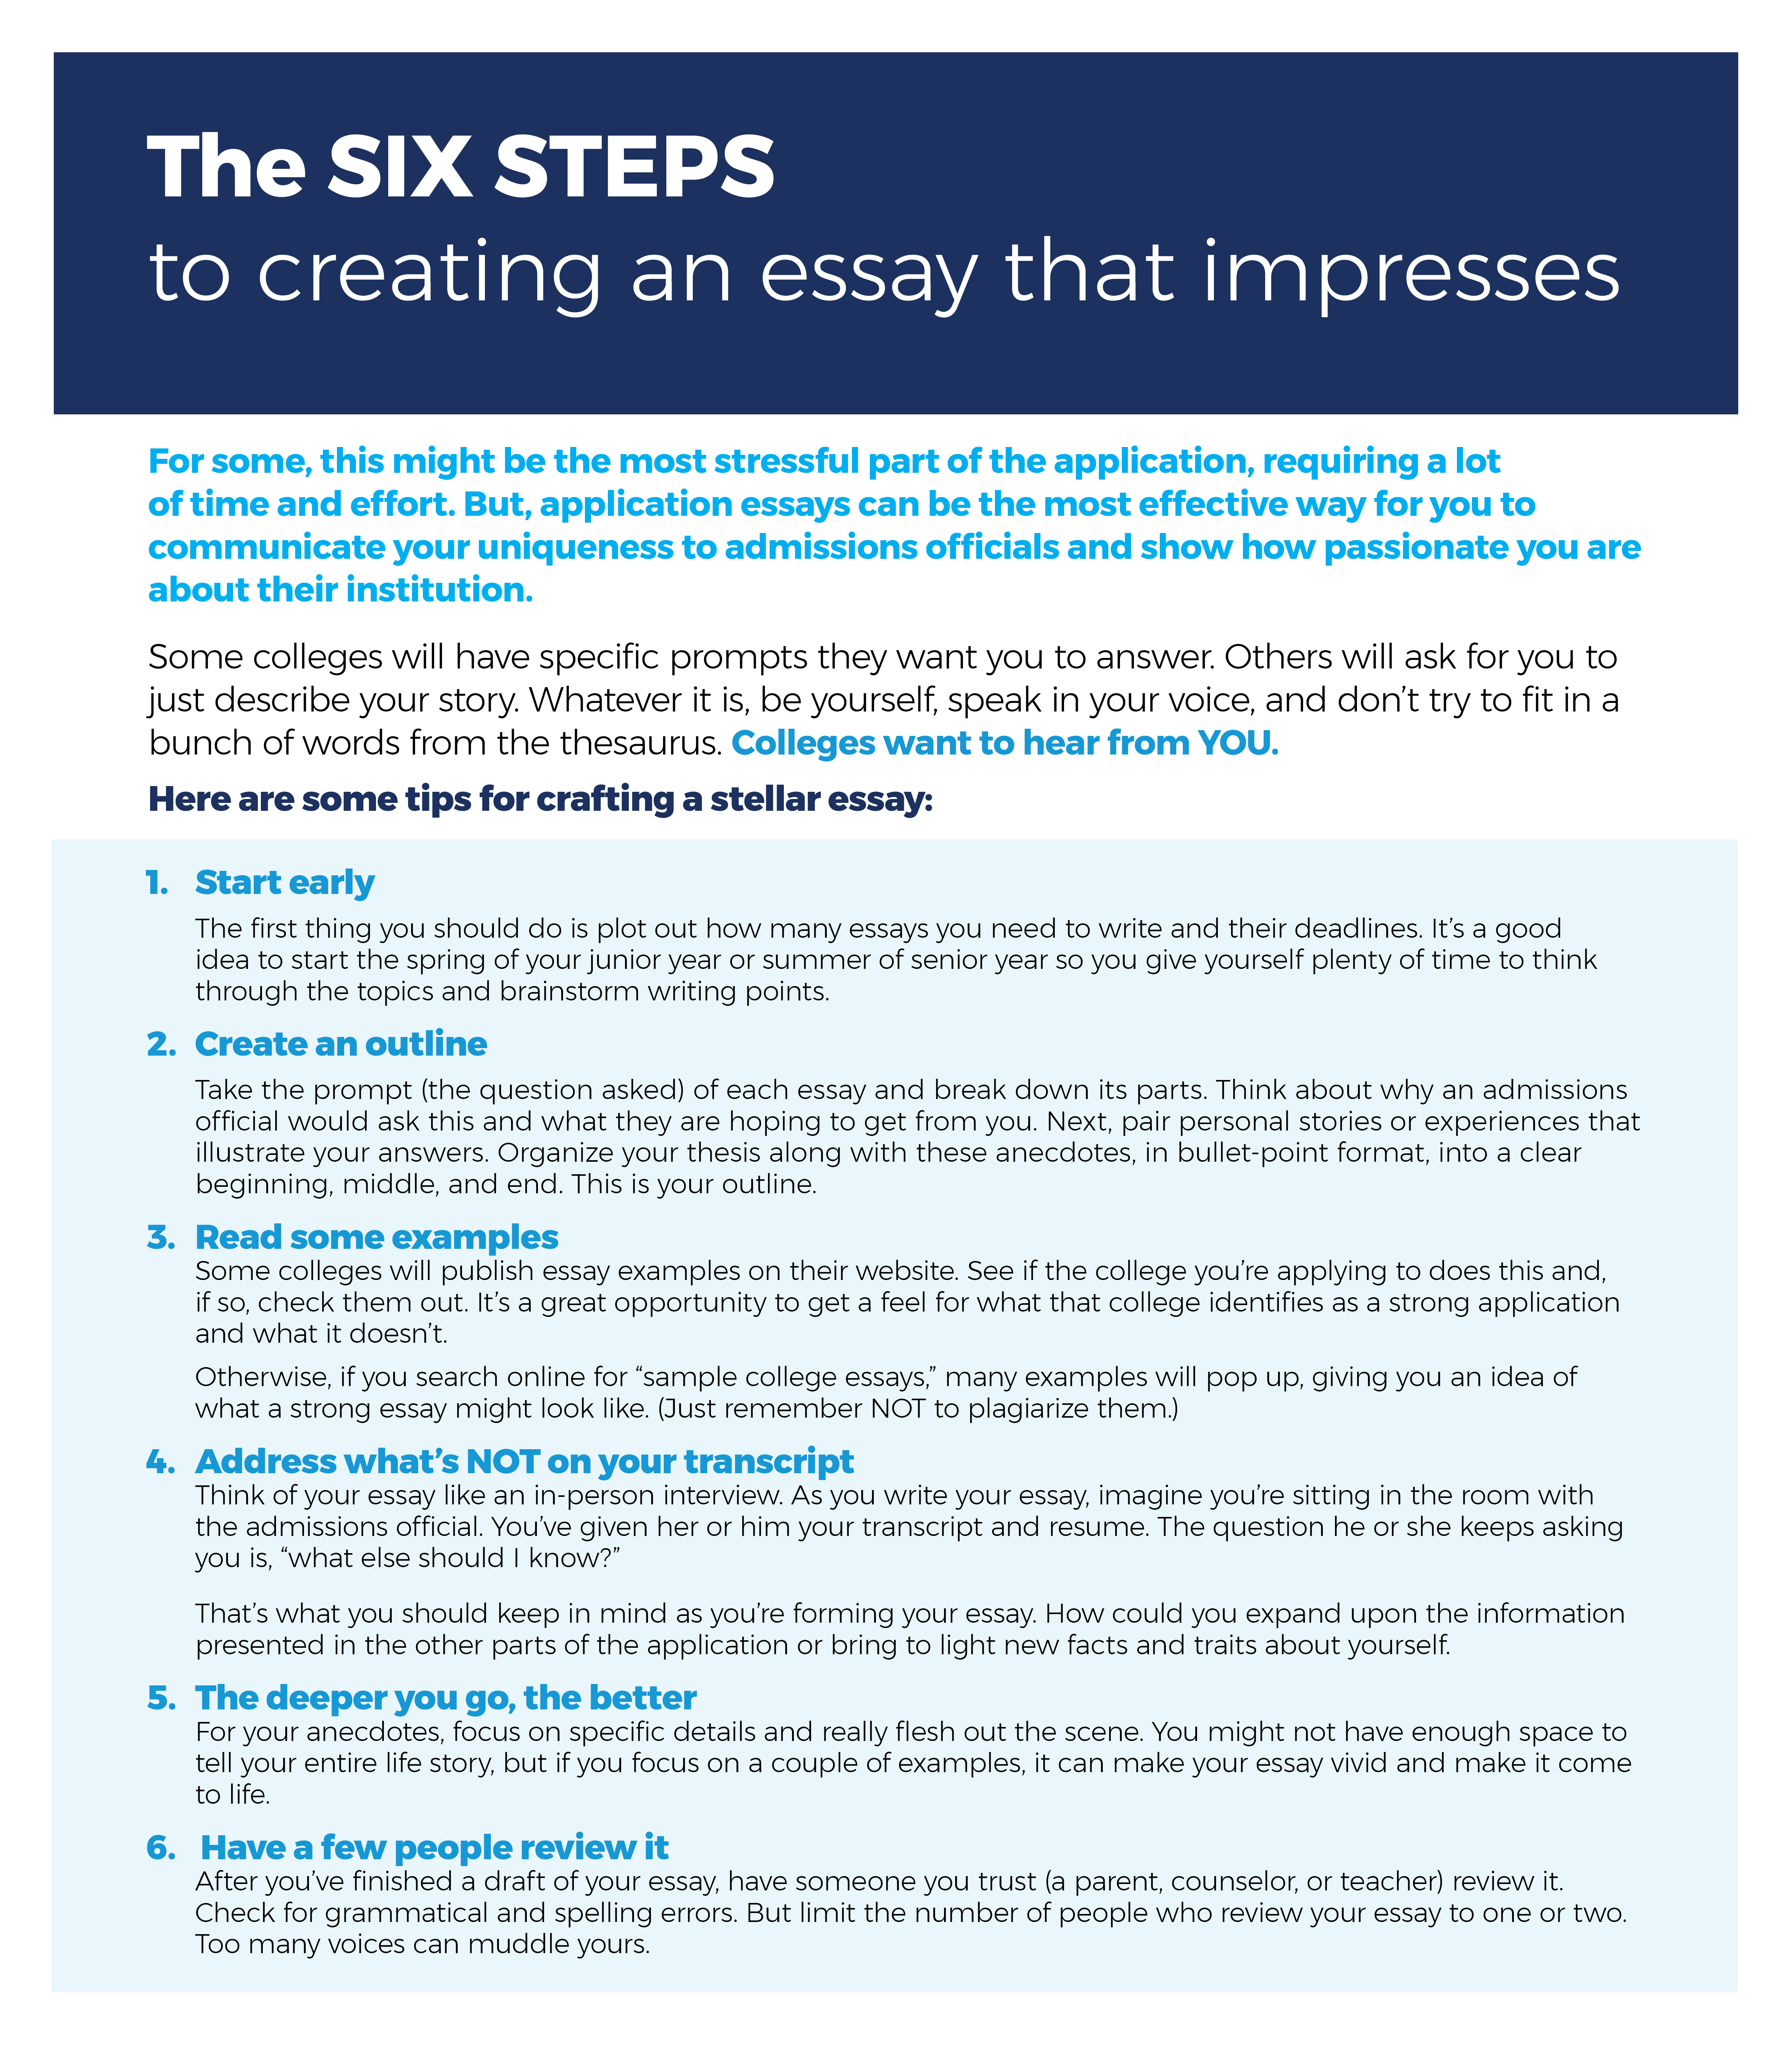 005 Act Essay Tips How To Write An Application Craftan Stellar College Incredible Prepscholar Full